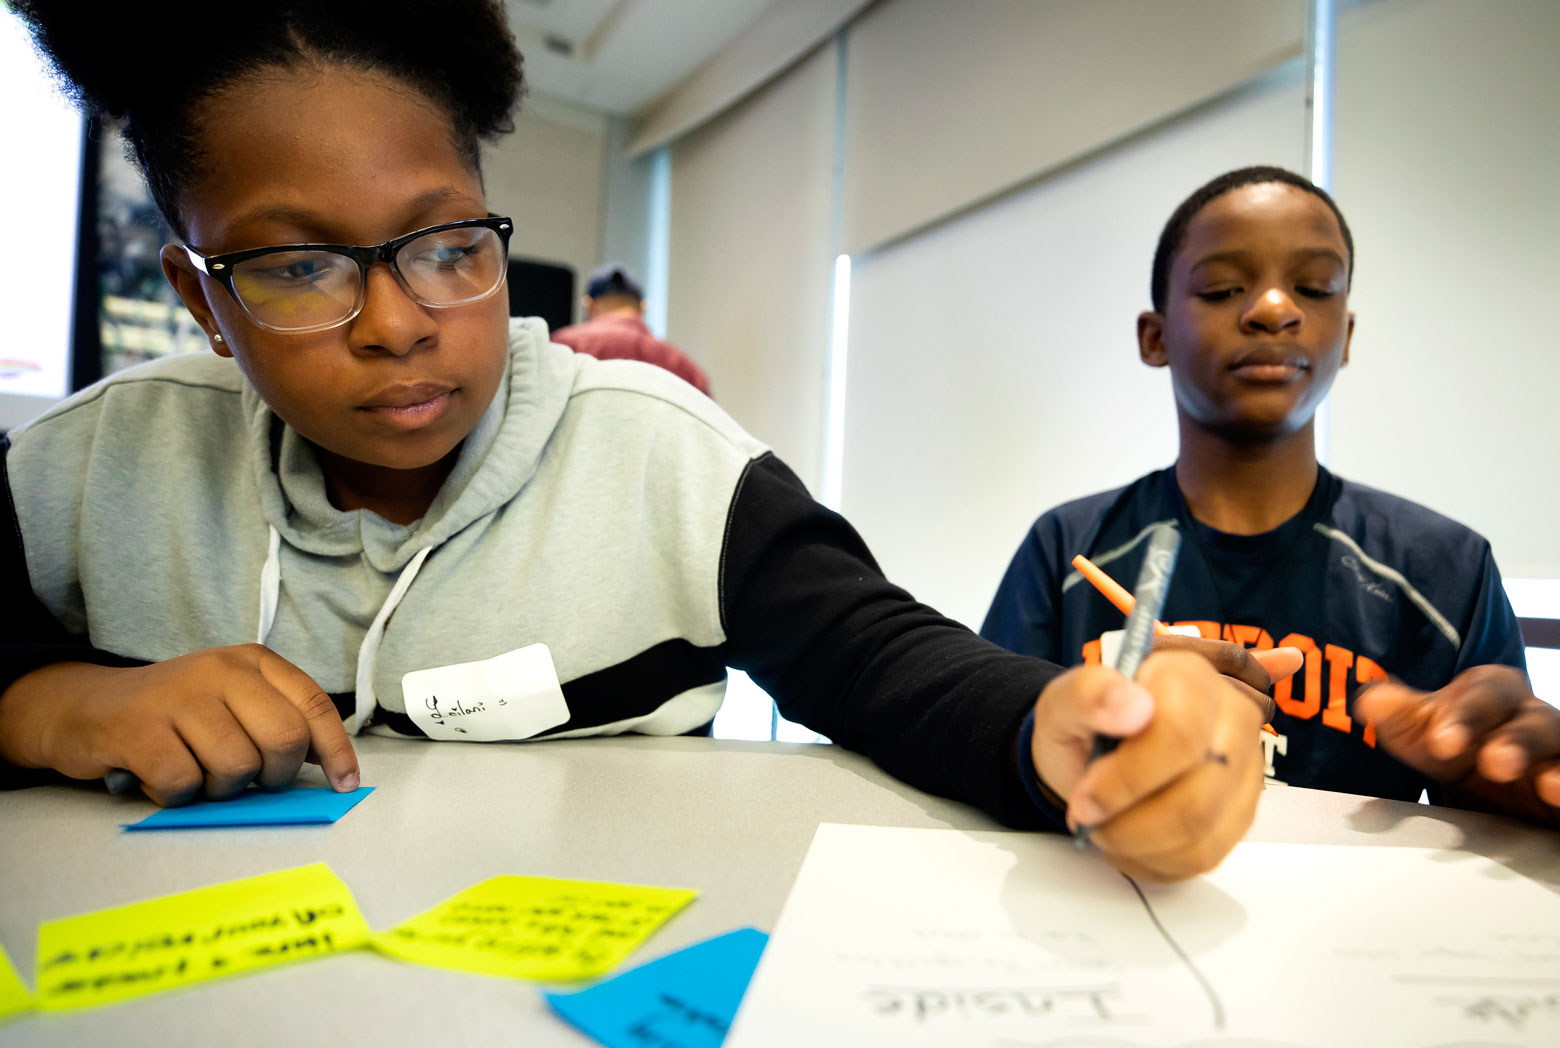 Two middle school students work on a design challenge